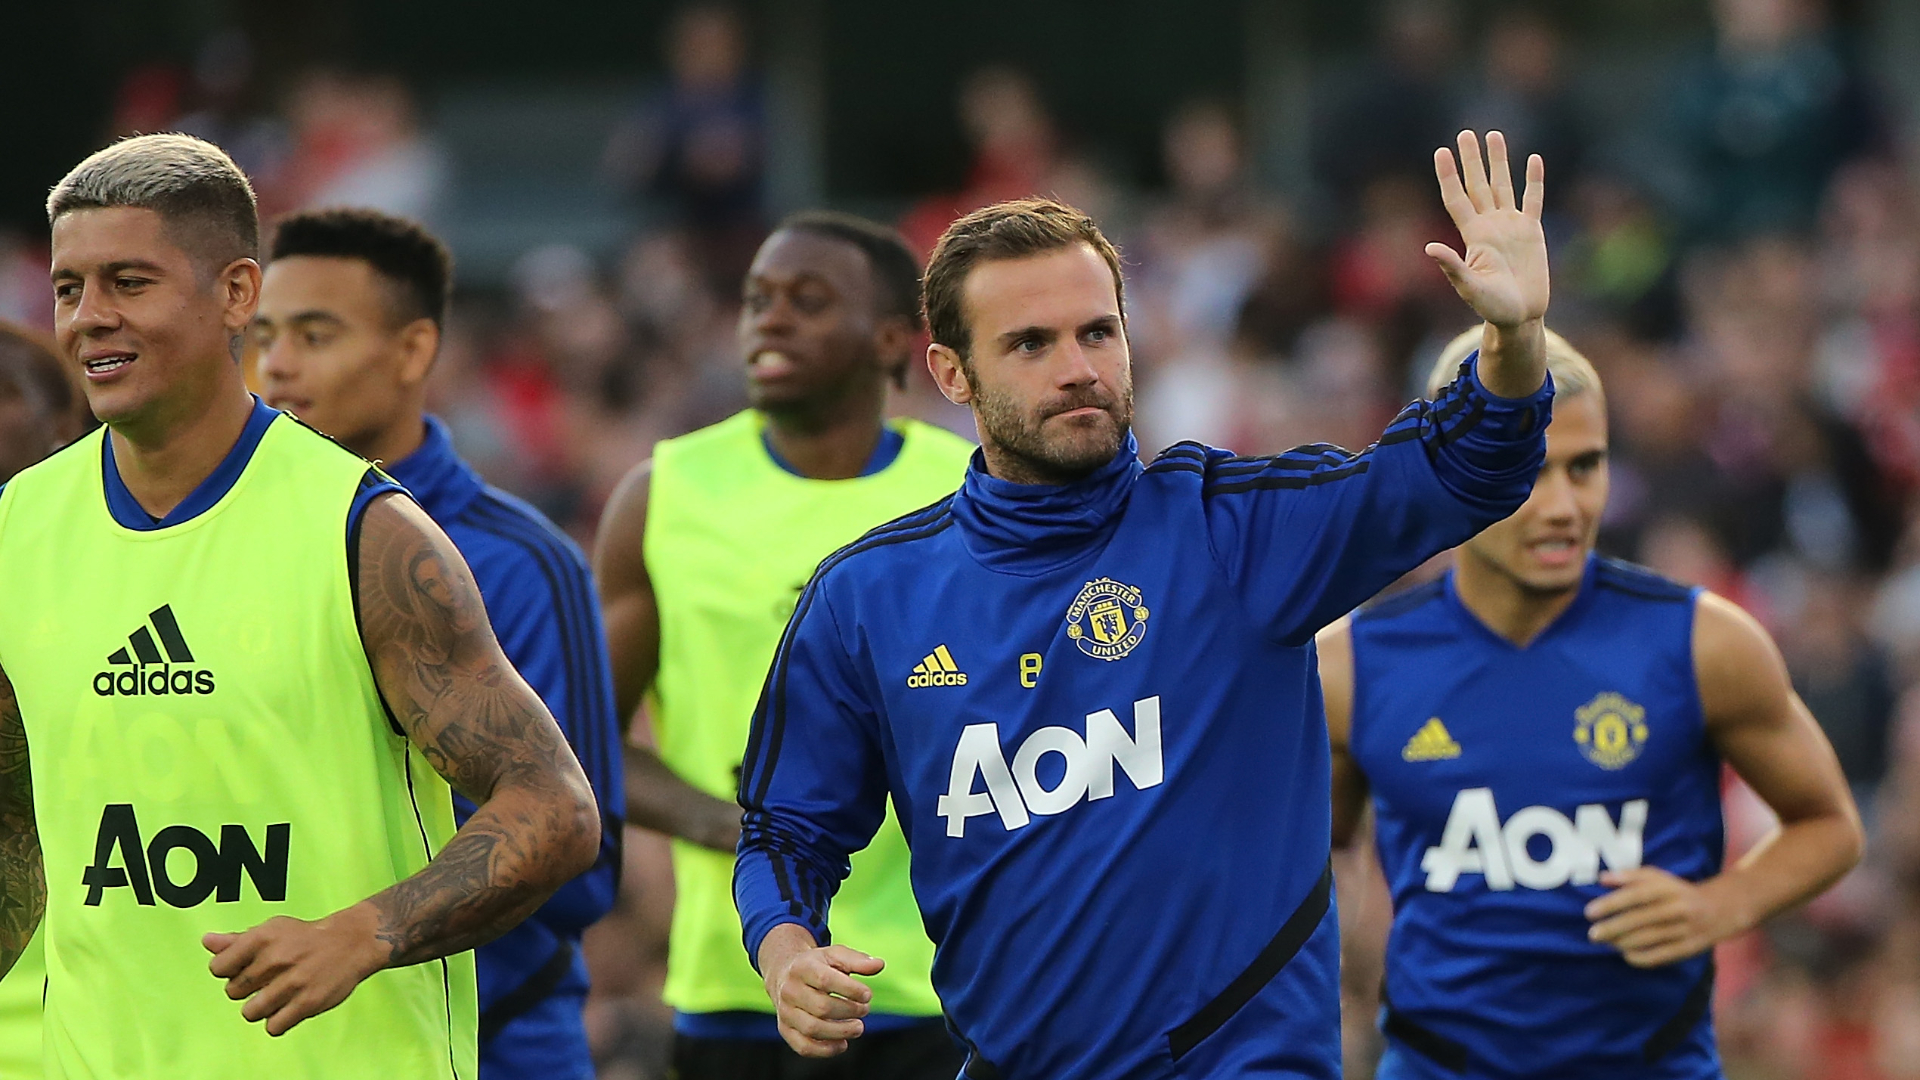 'We must raise our level' - Mata issues rallying cry to Man Utd team-mates after disappointing season